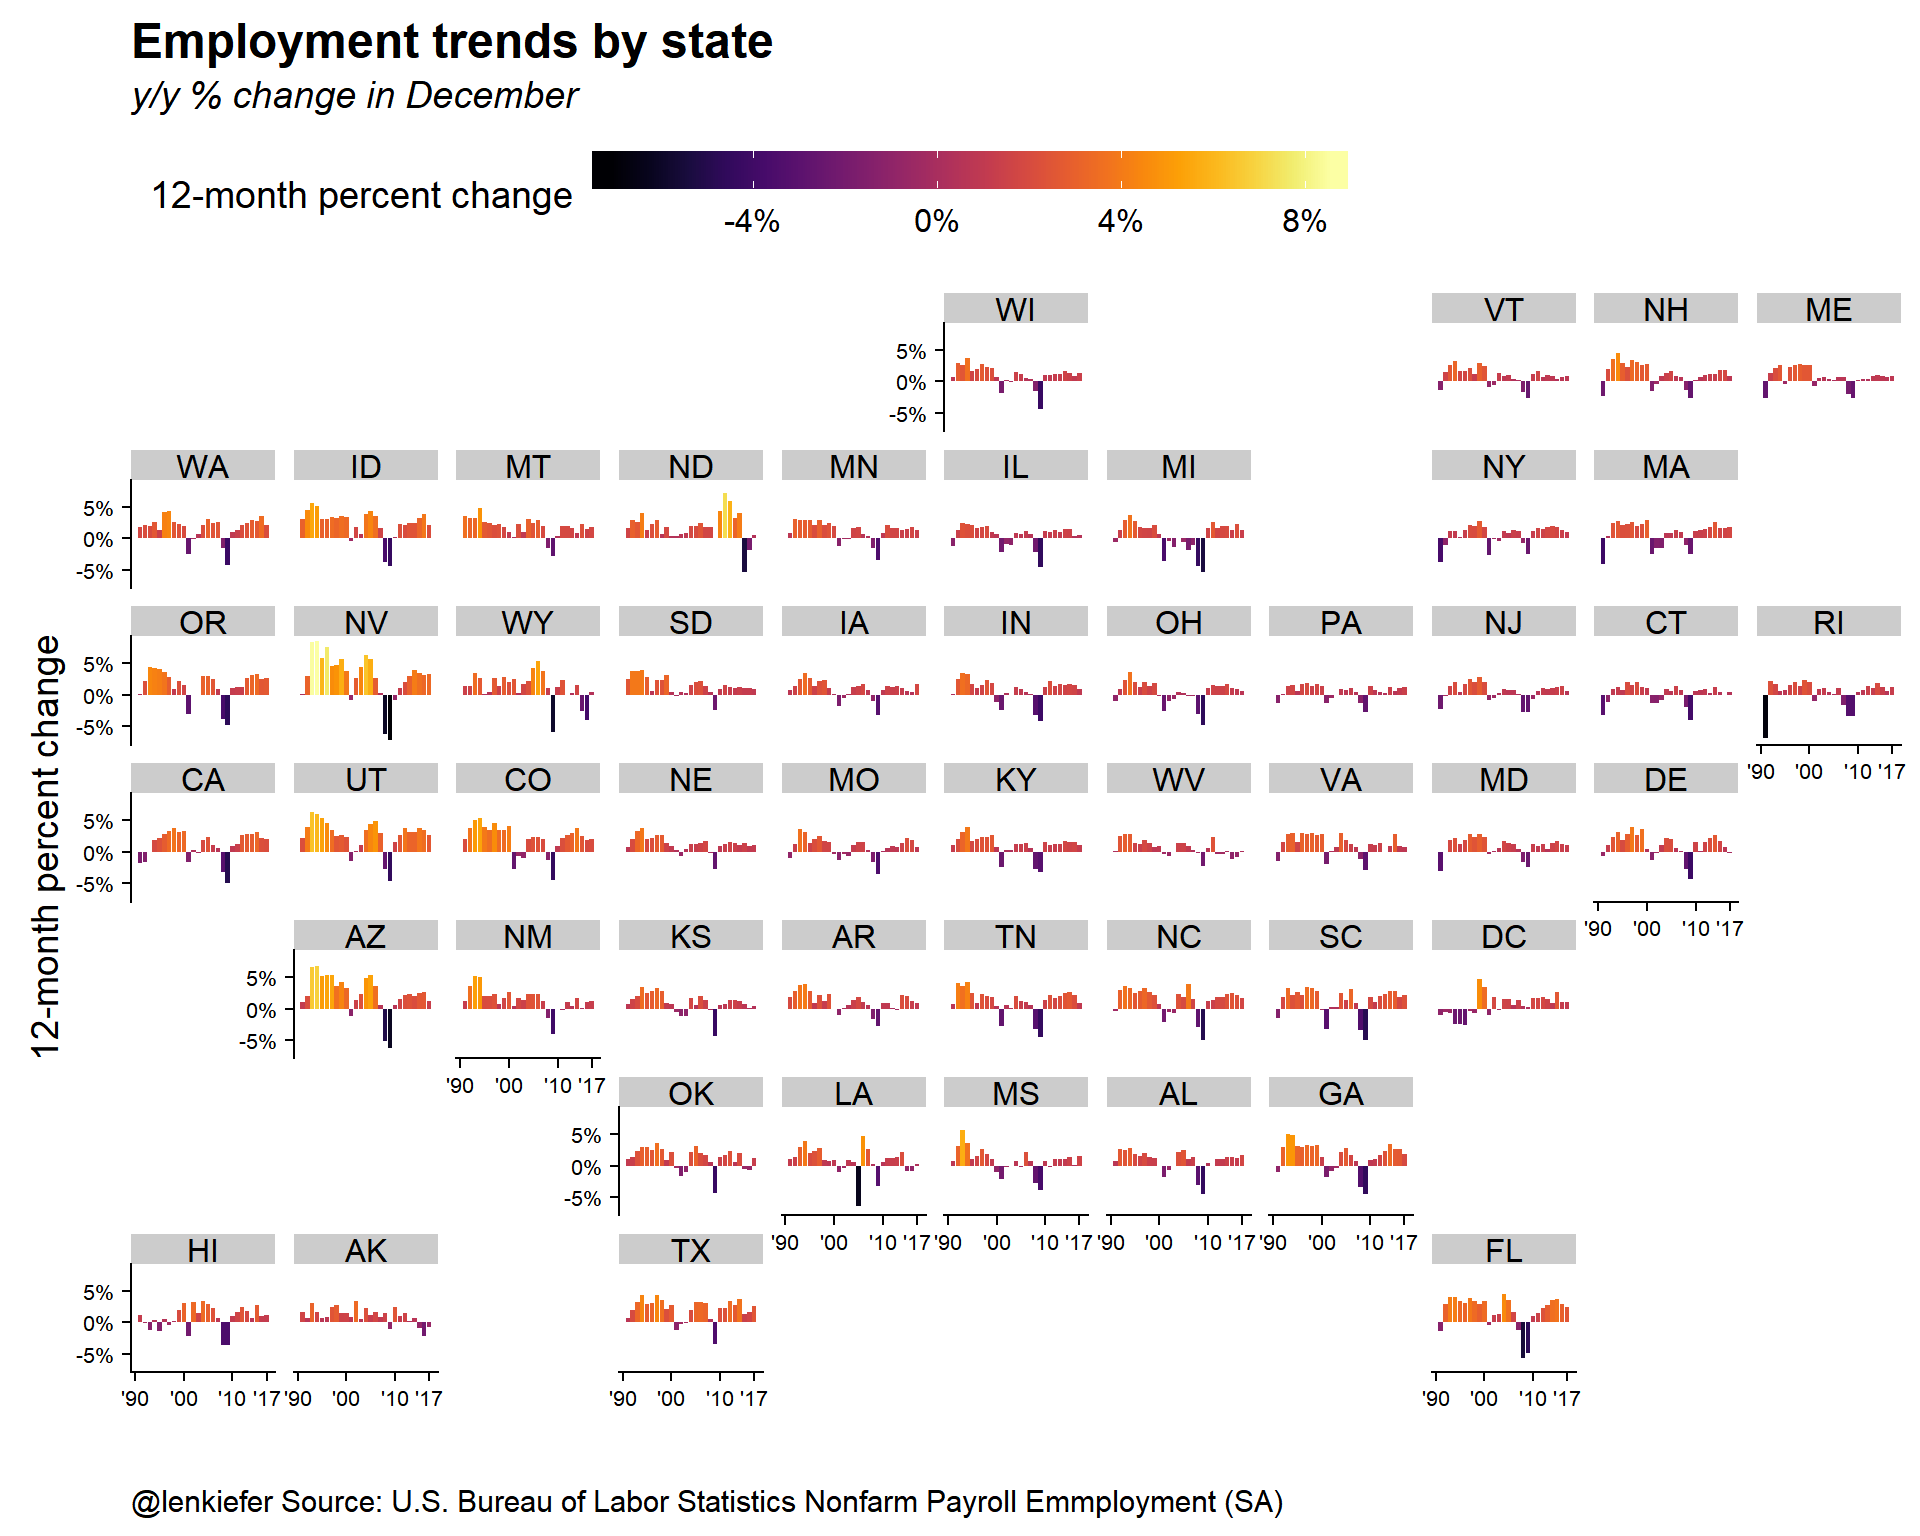 Employment growth and house price trends len kiefer now we can combine the employment and house price trends into a single plot this is a bivariate tilegrid map we made last year buycottarizona Gallery